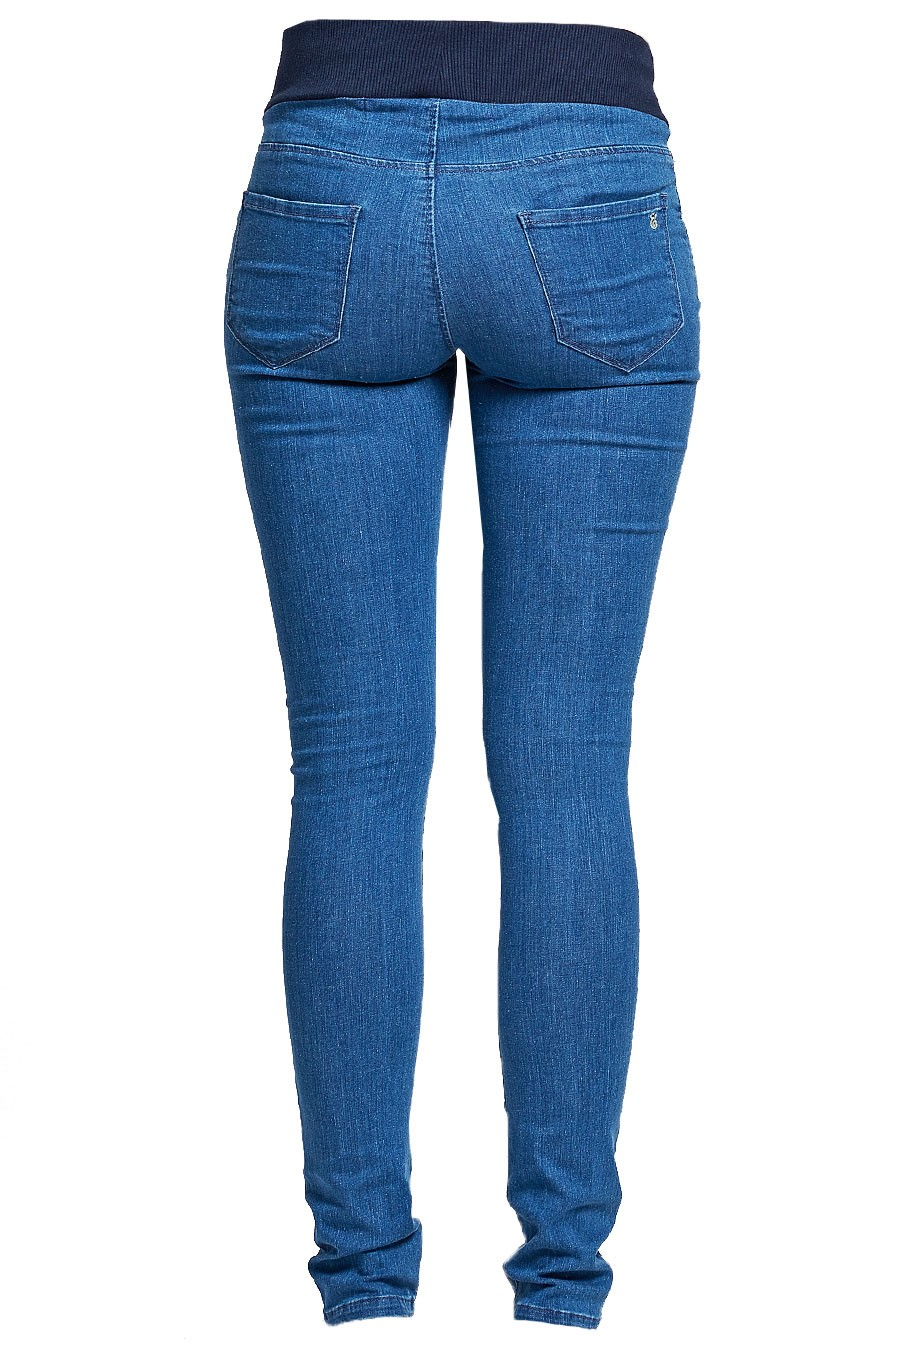 angel skinny jeans are super slim fit in three stylish. Black Bedroom Furniture Sets. Home Design Ideas